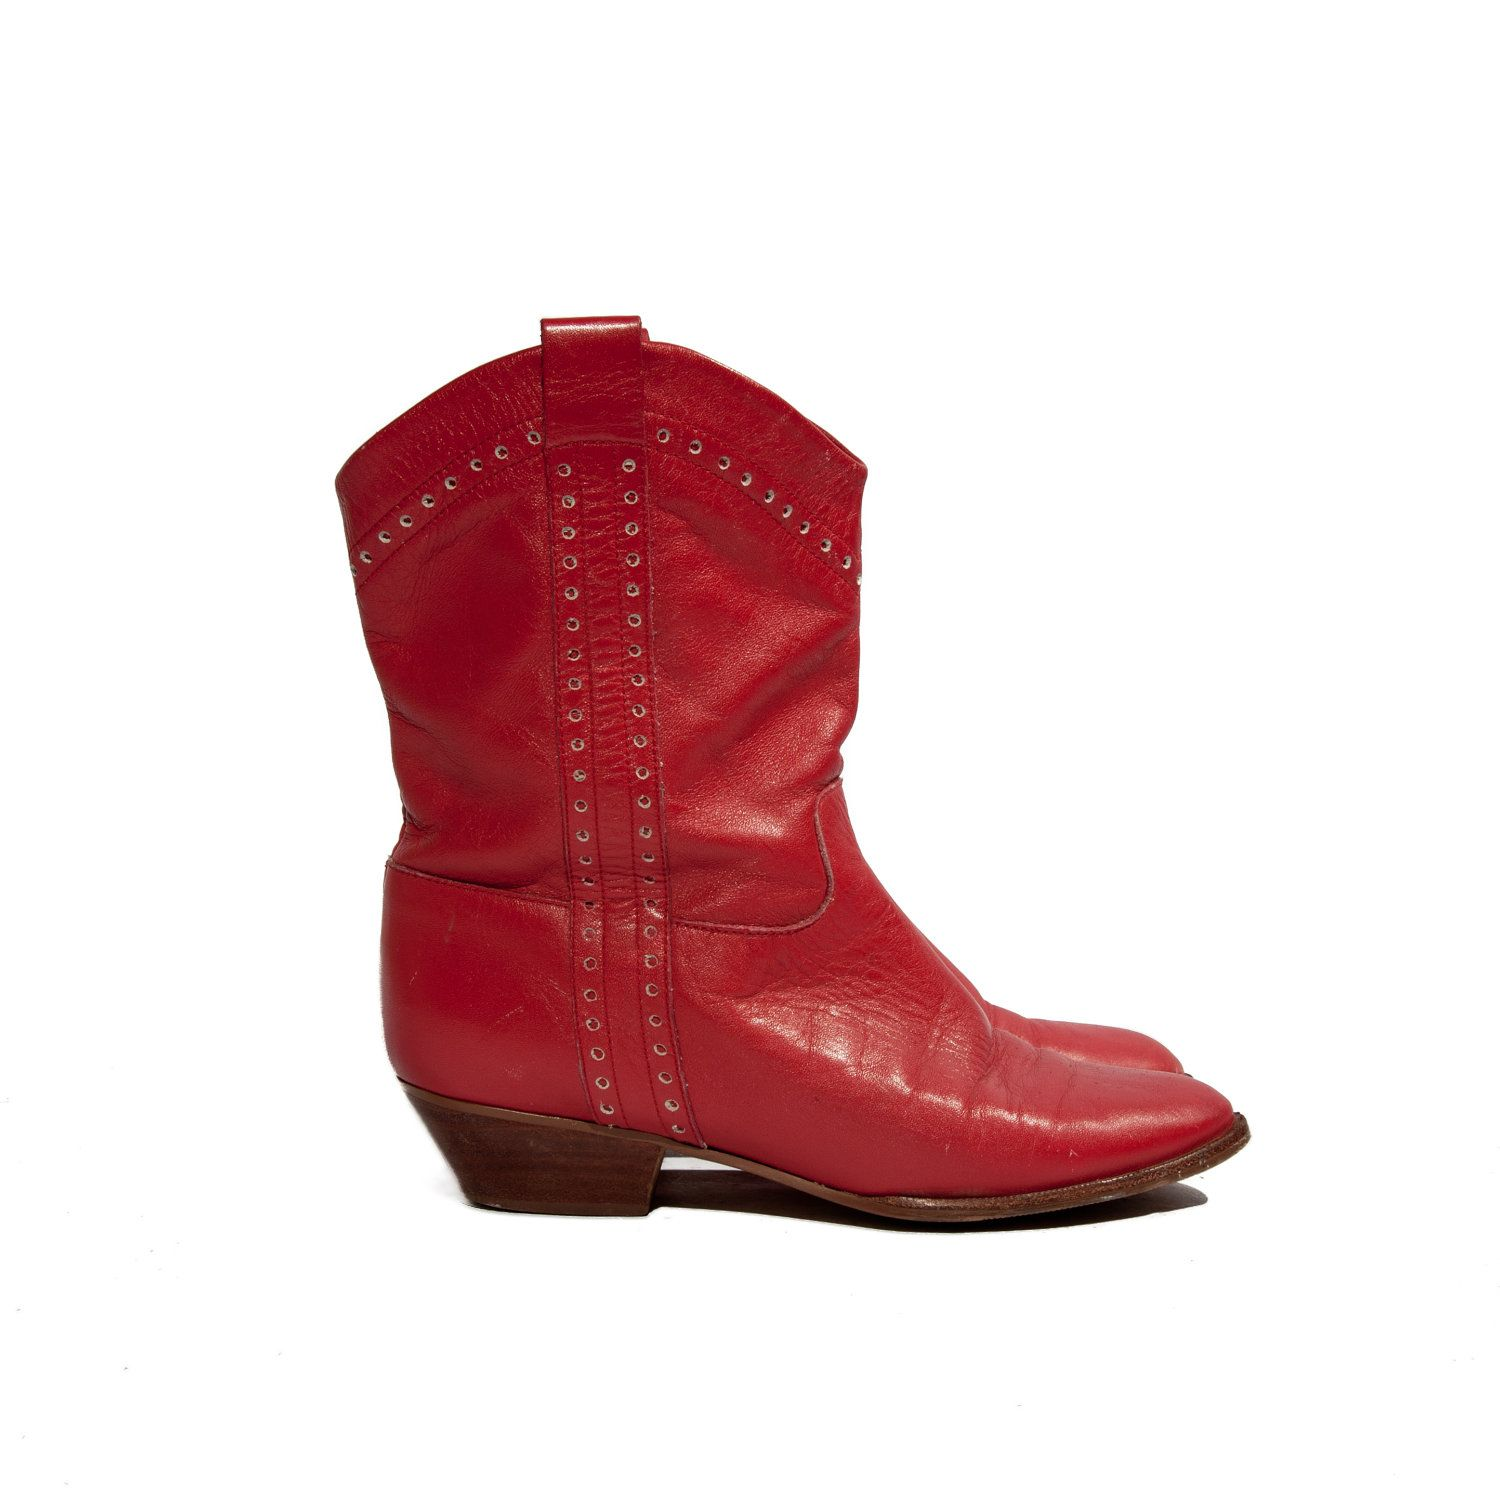 Rockabilly Red Dingo Pee Wee Cowboy Boots for a Women\'s Size 6